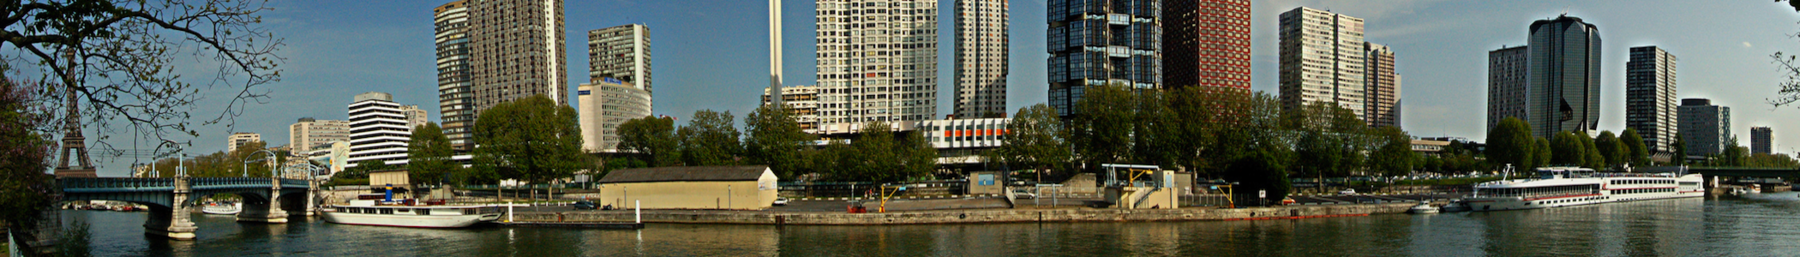 Paris 15e Wikivoyage Banner.png